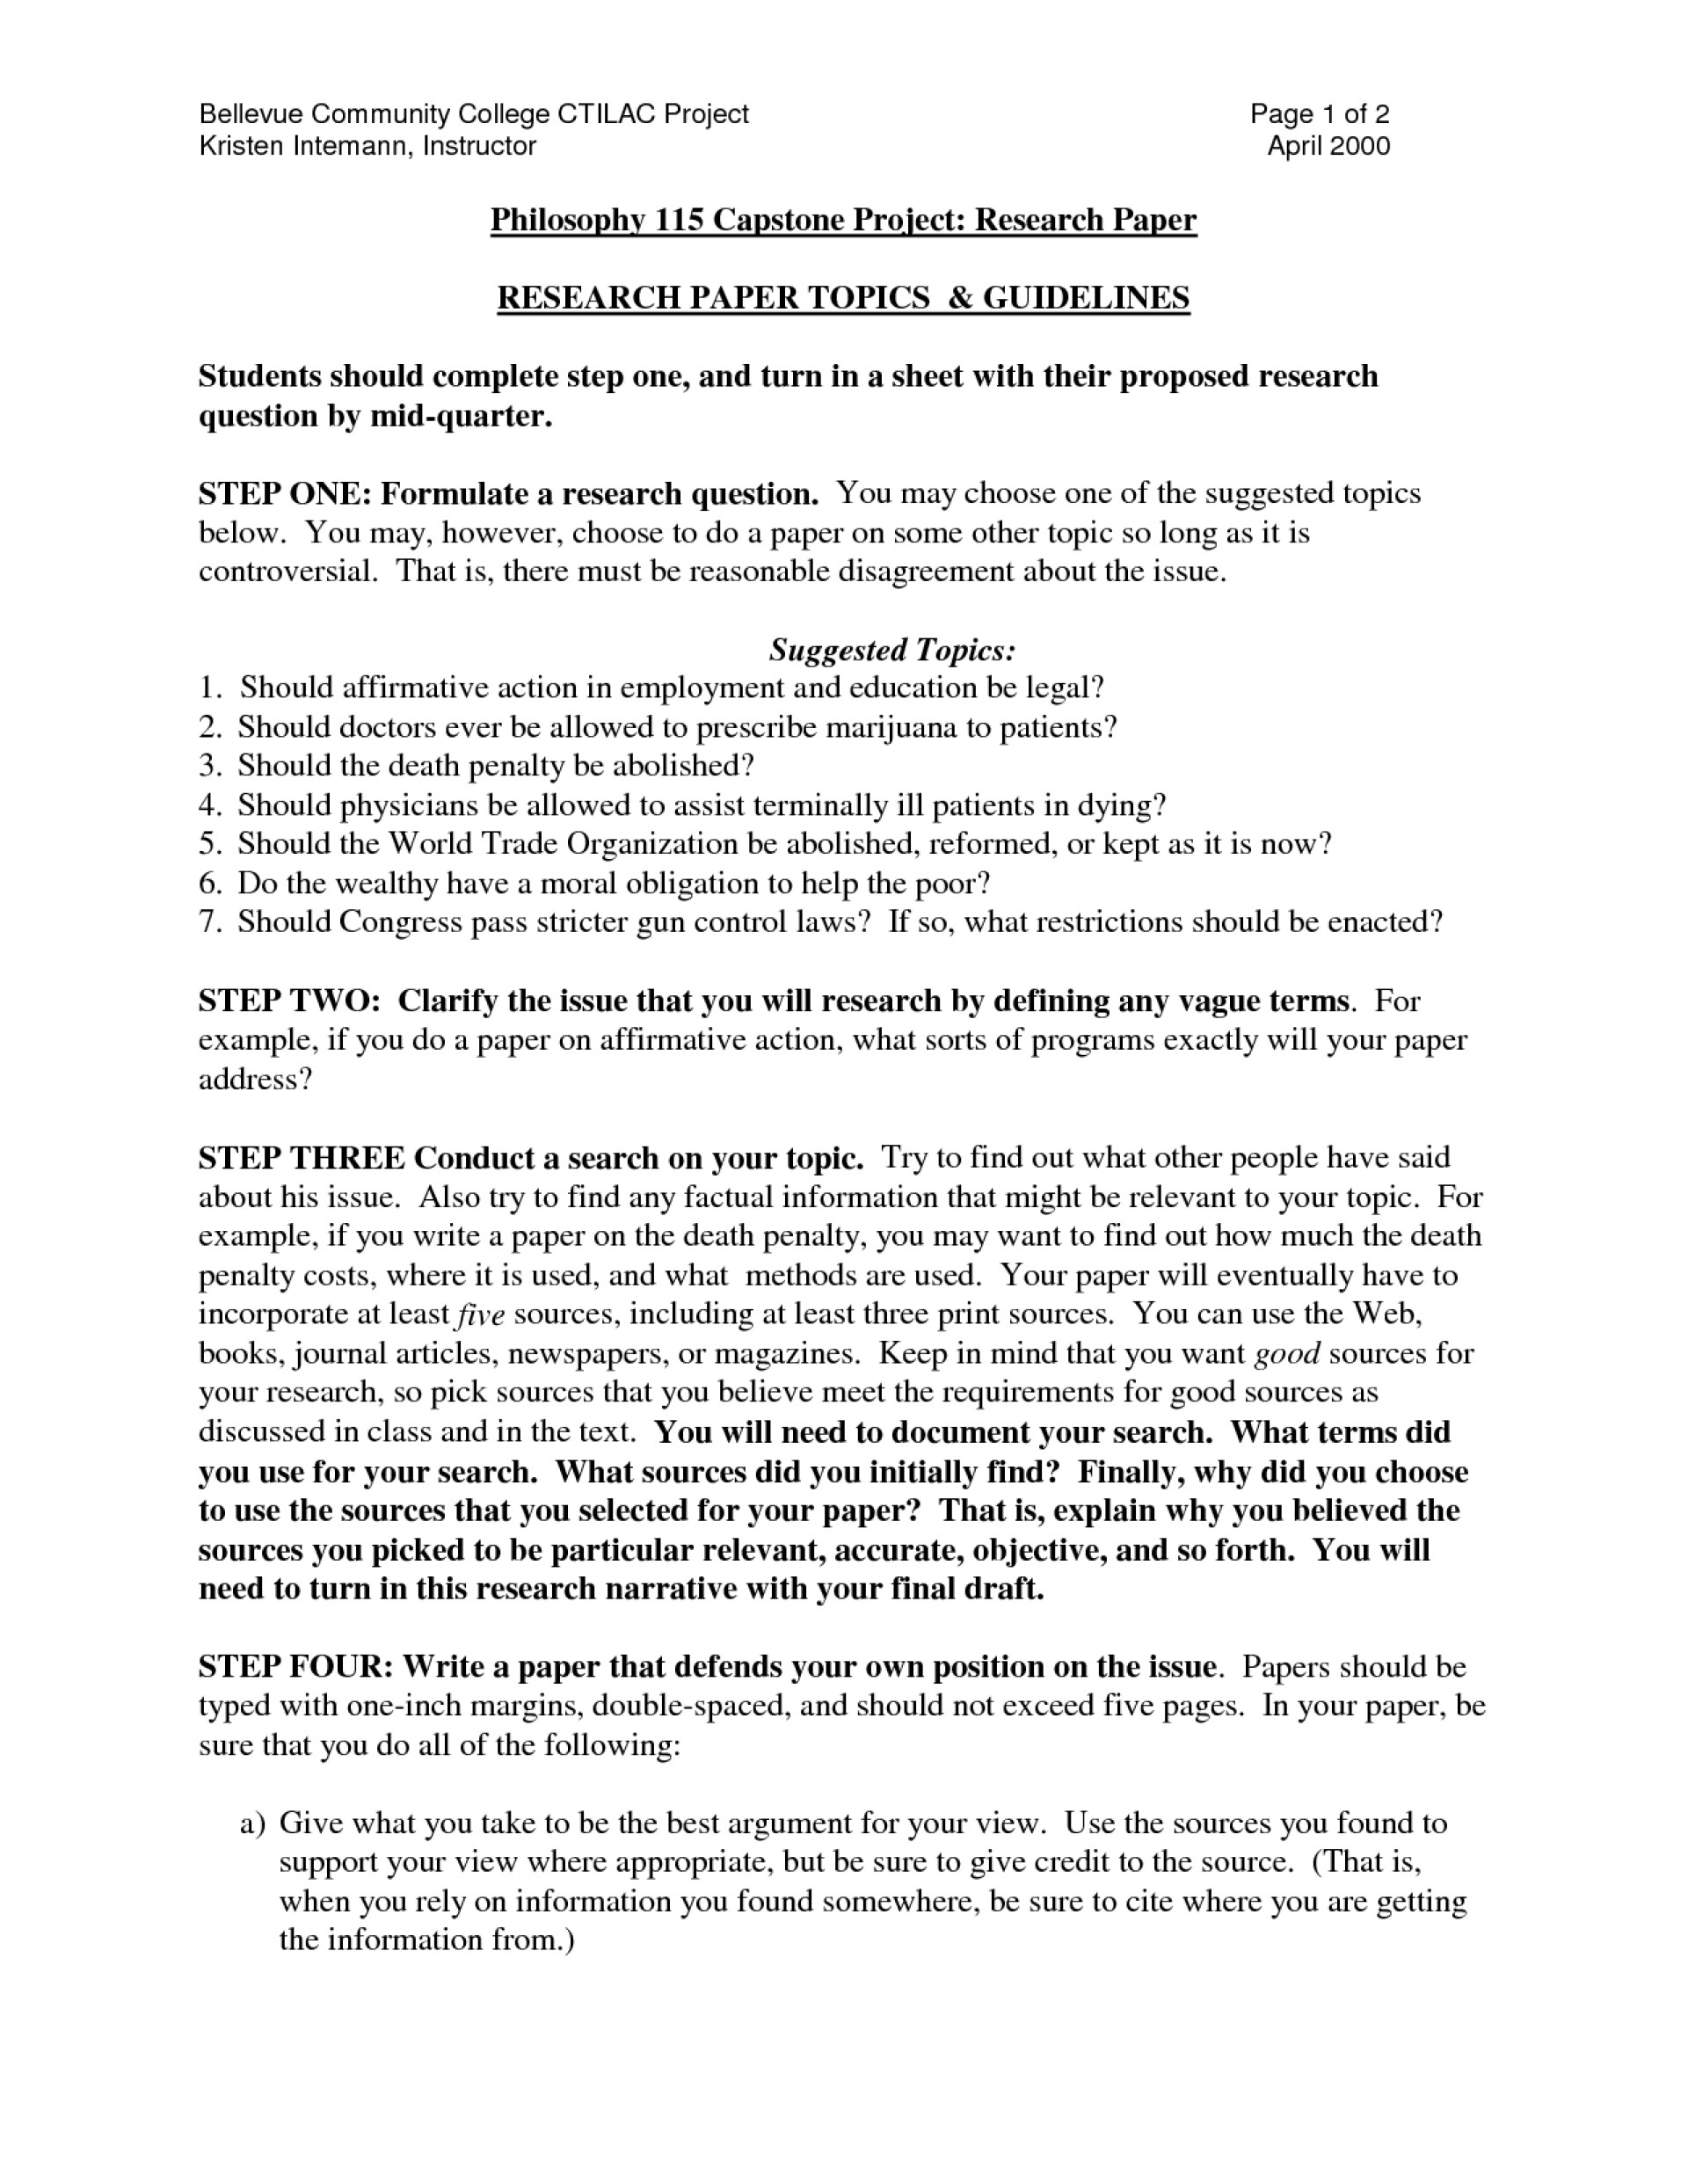 Easy Persuasive Essay Topics For High School  Thesis Statement For Argumentative Essay also Compare And Contrast Essay Topics For High School Students  Introduction Samples For Research Papers Paper College  Catcher In The Rye Essay Thesis